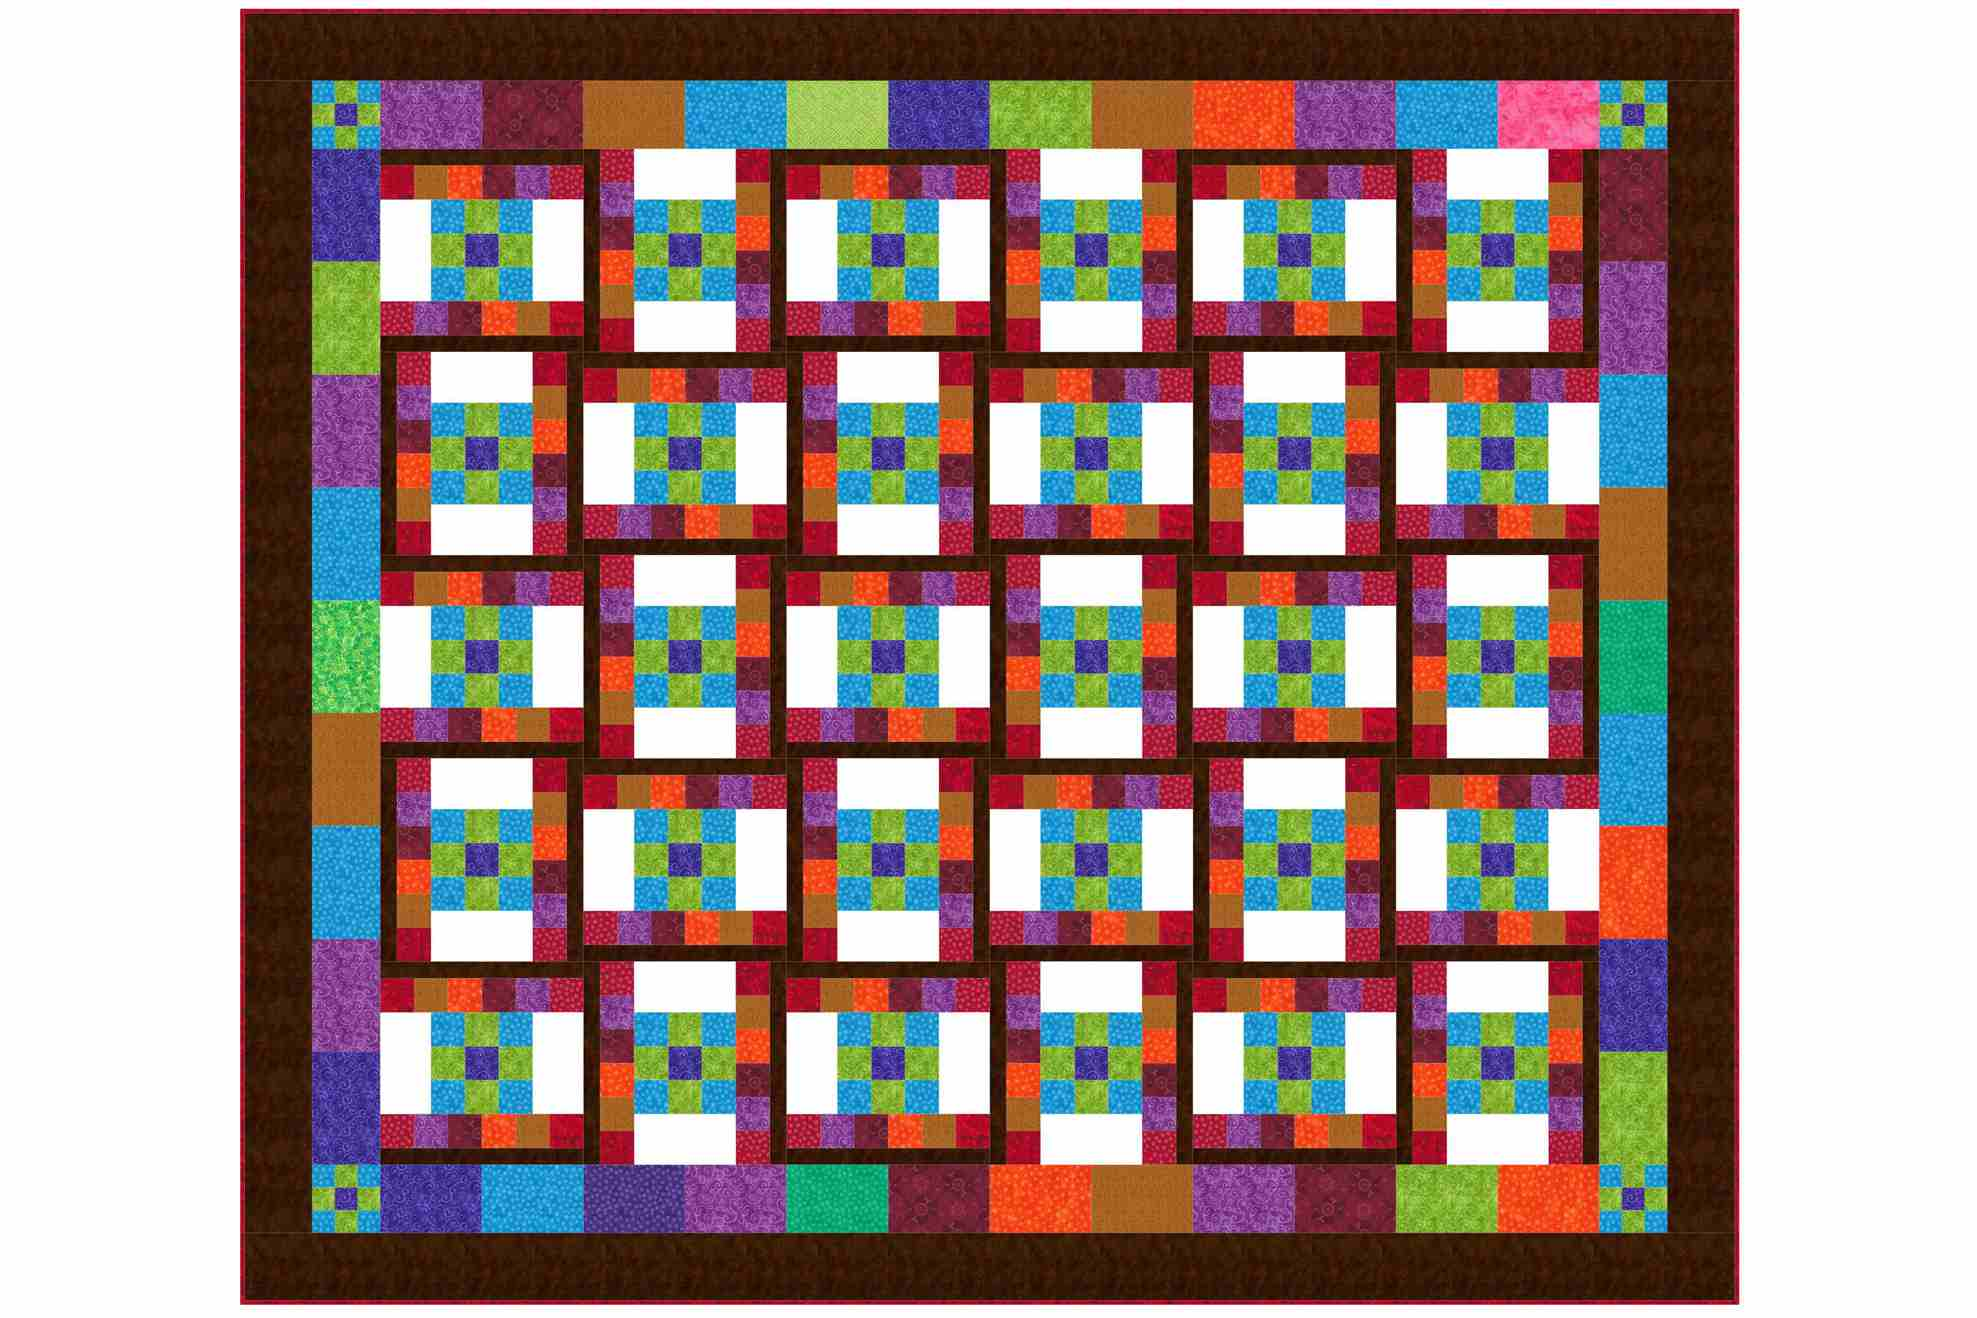 Dancing nine patch quilt pattern